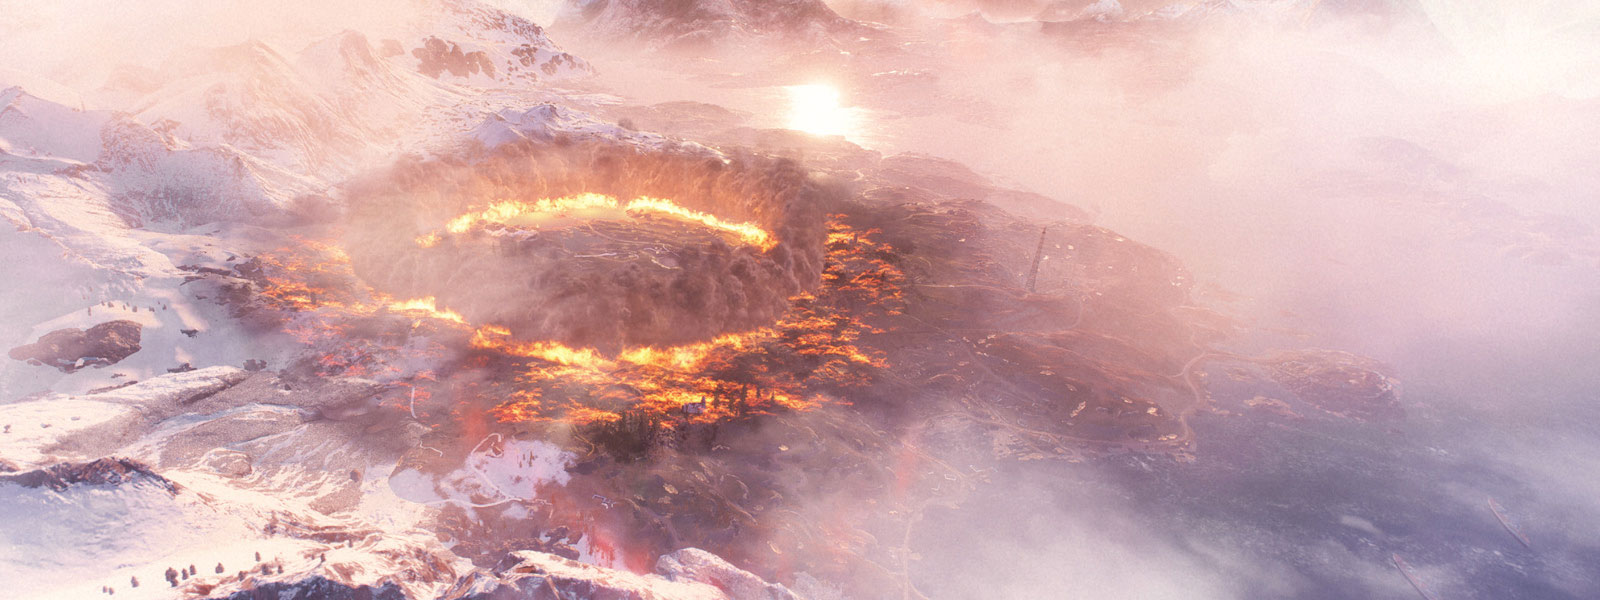 An explosion has left a crater in a firestorm